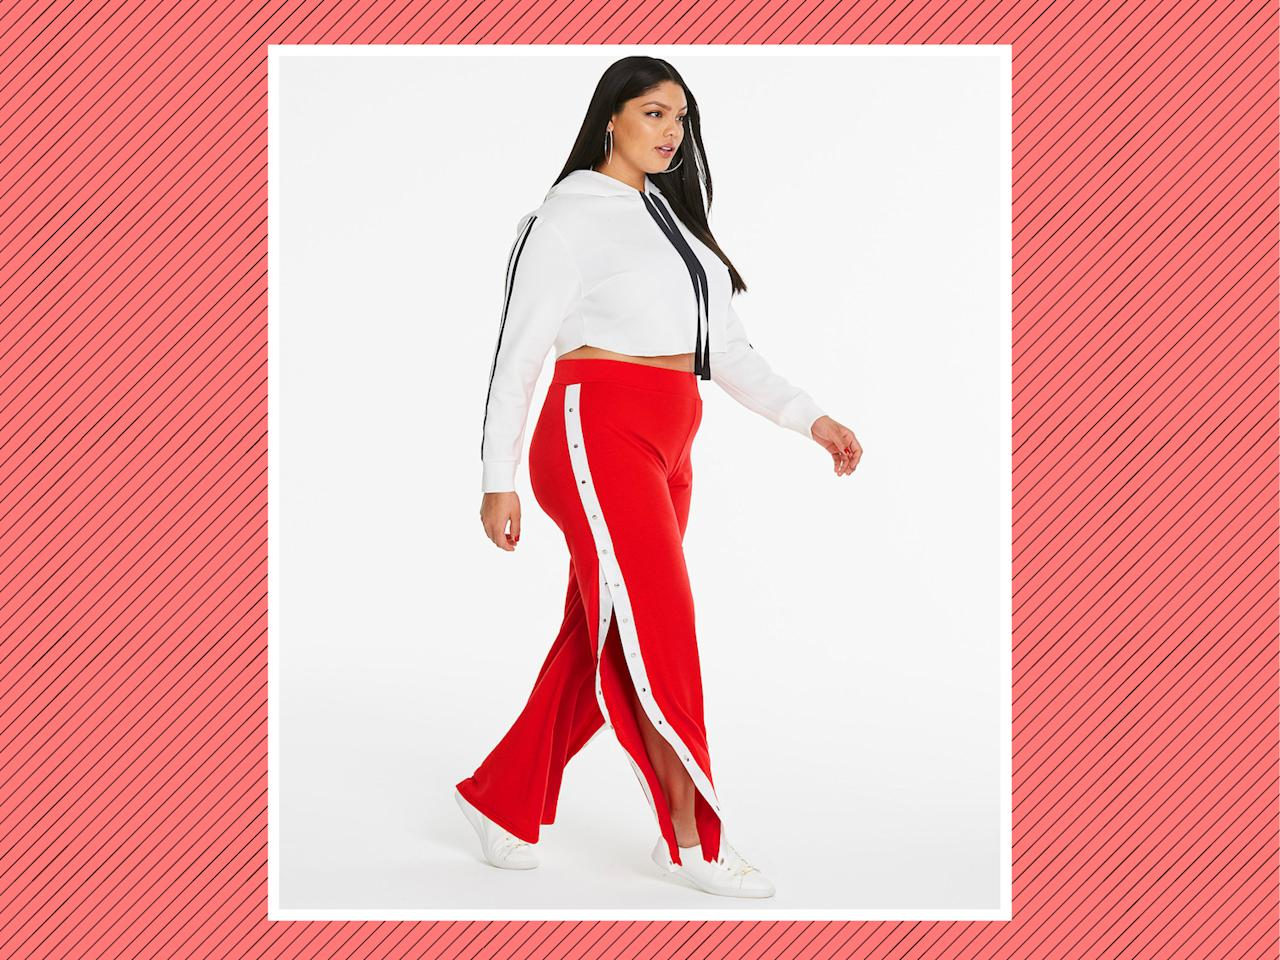 "<p>Side Strip Popper Trousers, $46, <a rel=""nofollow"" href=""https://www.simplybe.com/en-us/products/sbu-popper-trousers/p/WZ585#v=color%3AWZ585_RED%2FIVORY%7C"">Simply Be </a>(Photo: Simply Be) </p>"